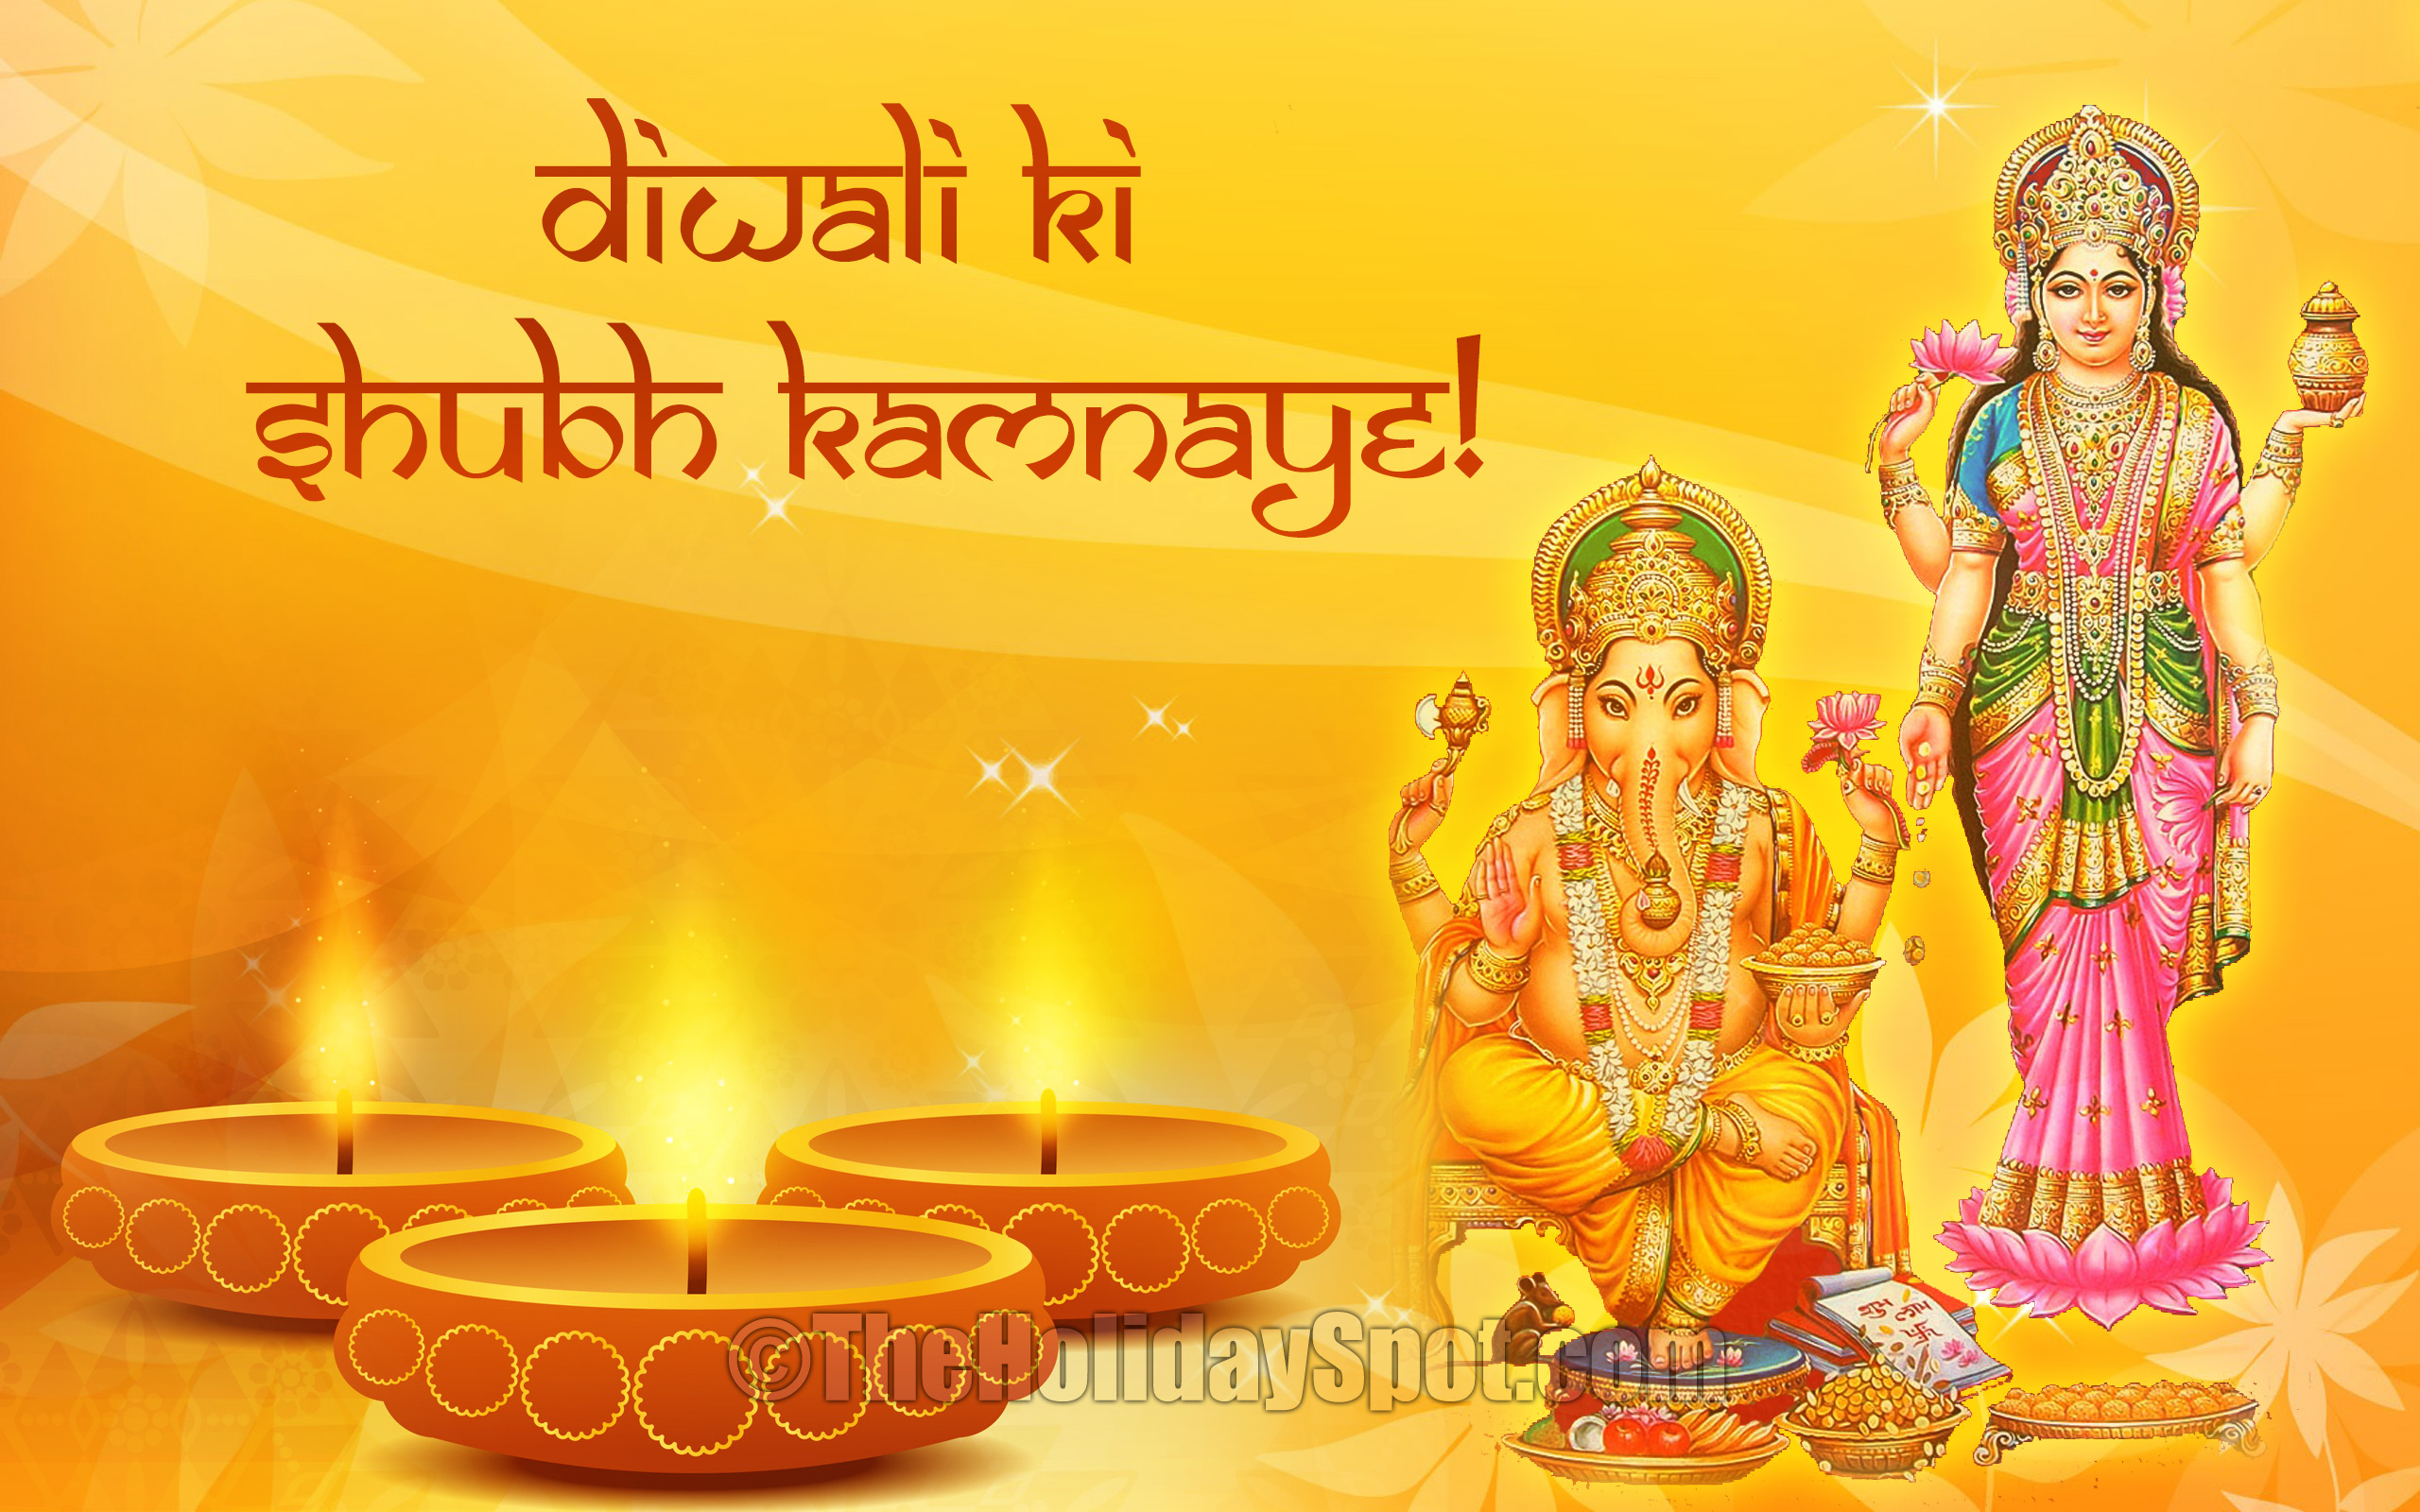 diwali-ki-shubhkamnayen-hd-wallpaper-of-lakshmi-ganesh